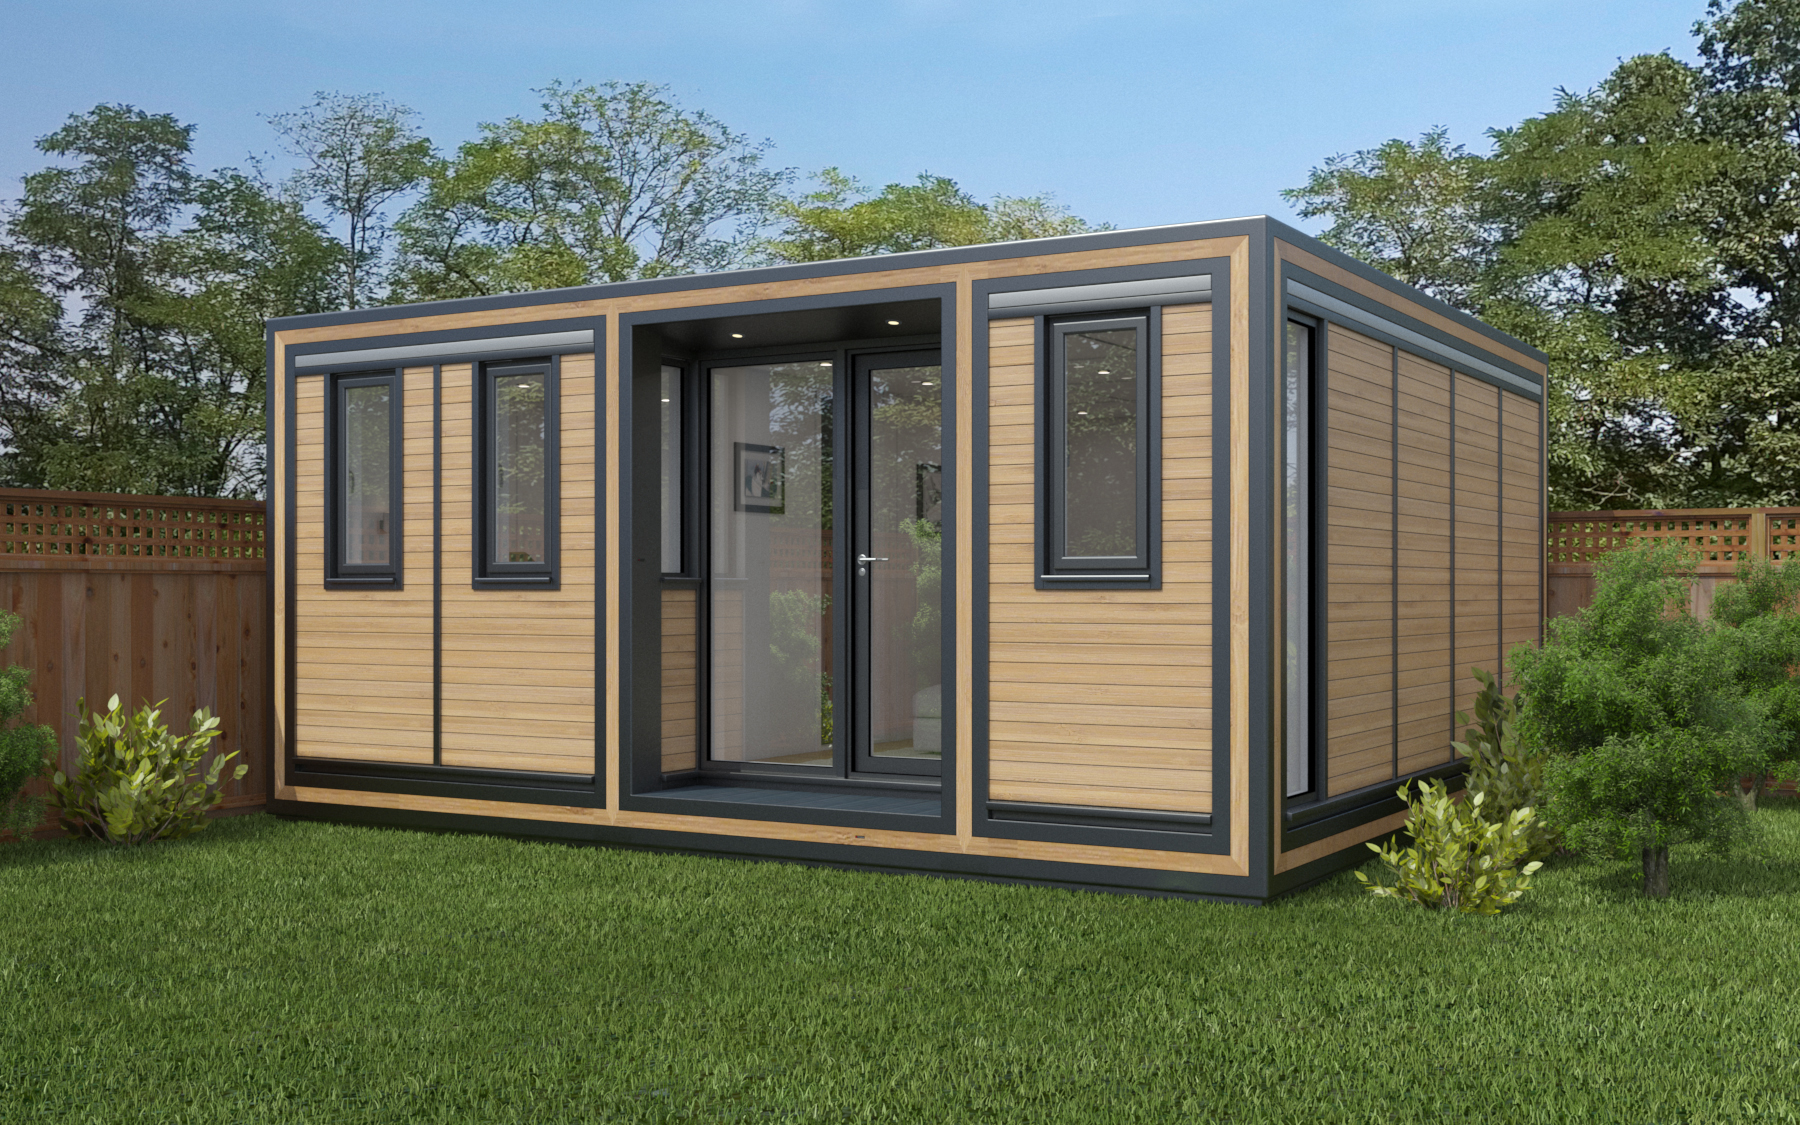 ZEDBOX 545  (5 x 4.5)  Internal Size: 5330 x 4817  External Size: 5800 x 5287  Bed Options: Single or Double  Kitchen Options: Micro or Premier  Wet Room Options: Yes  Portico: Yes  Price:  £38,000  *Excl Groundworks & Optional Extras   Optional Extras    Request Zedbox Catalogue